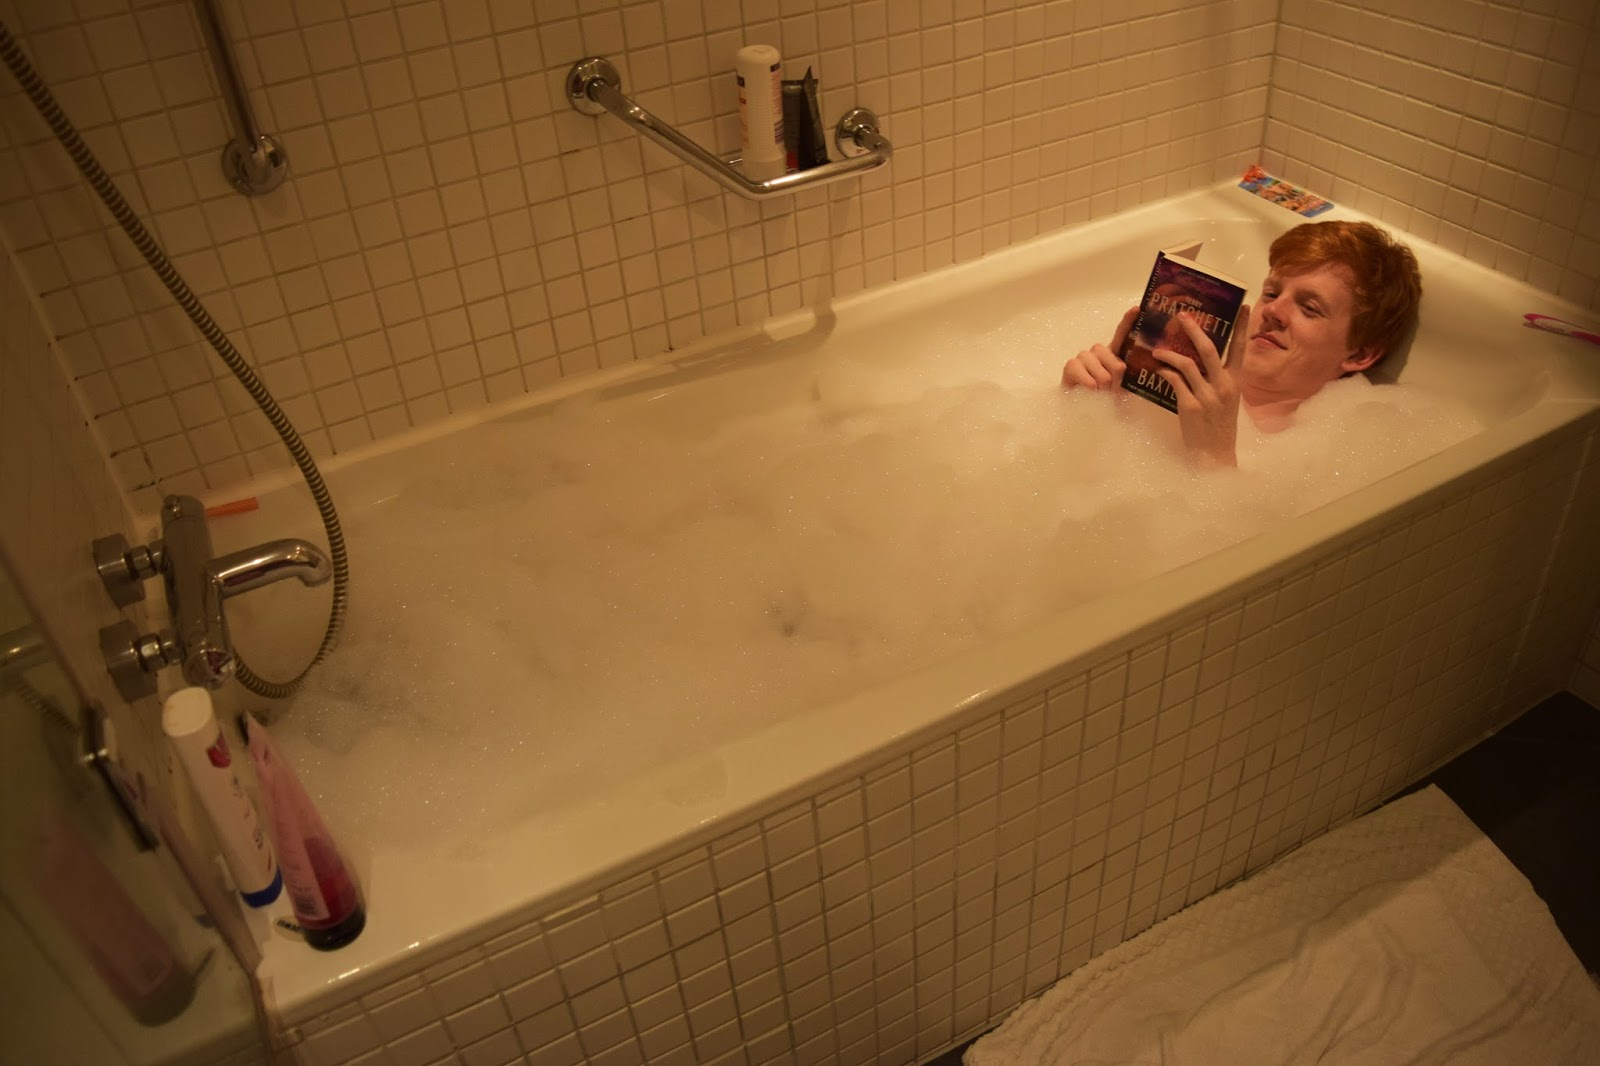 Sean taking a relaxing bubble bath